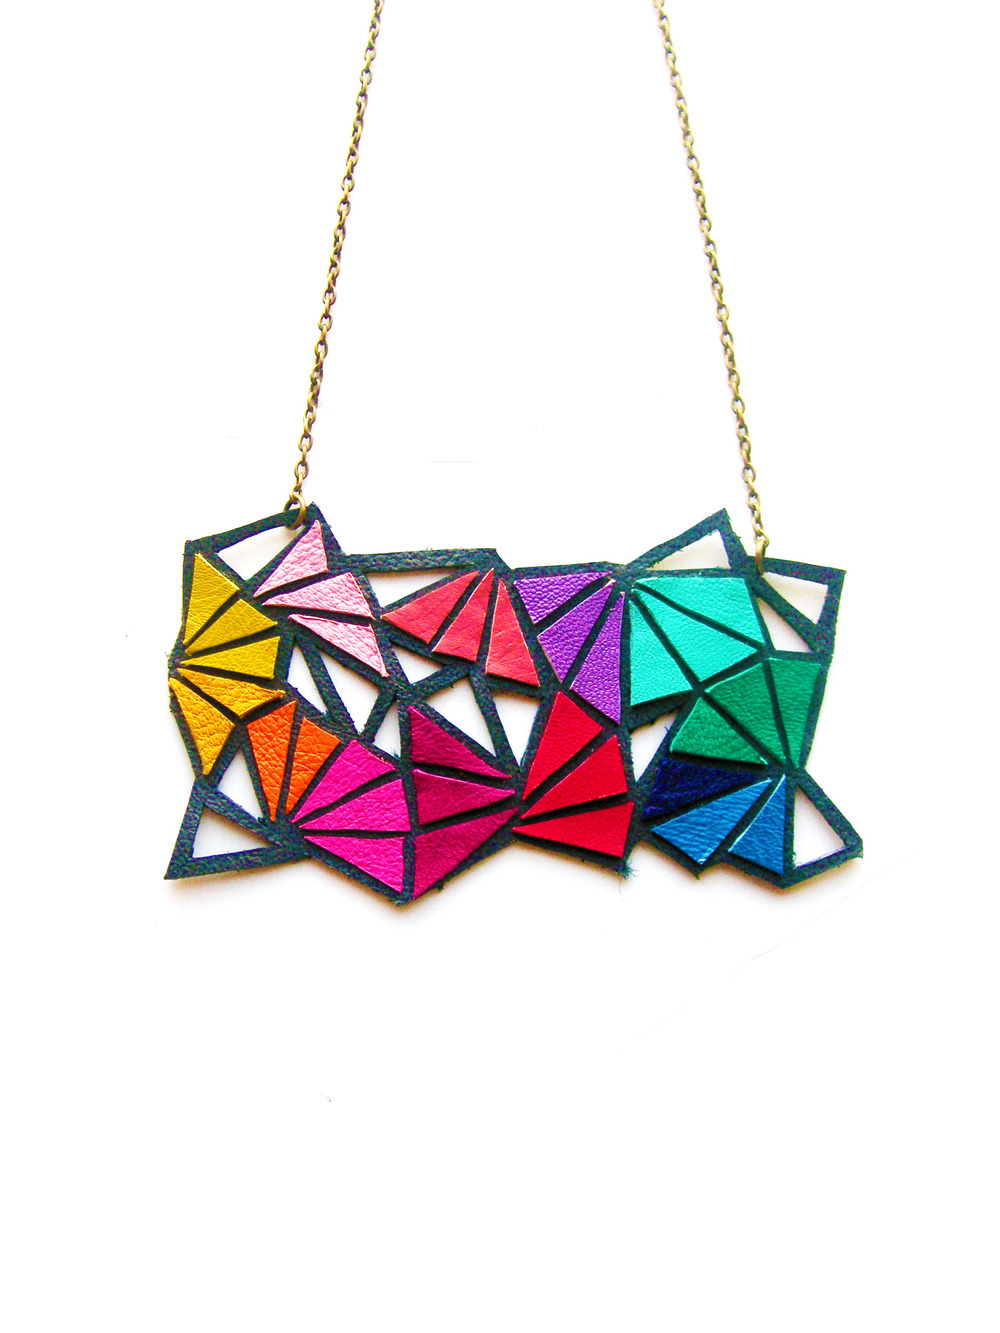 Geometric Necklace Leather Triangle Kaleidoscope 2.jpg